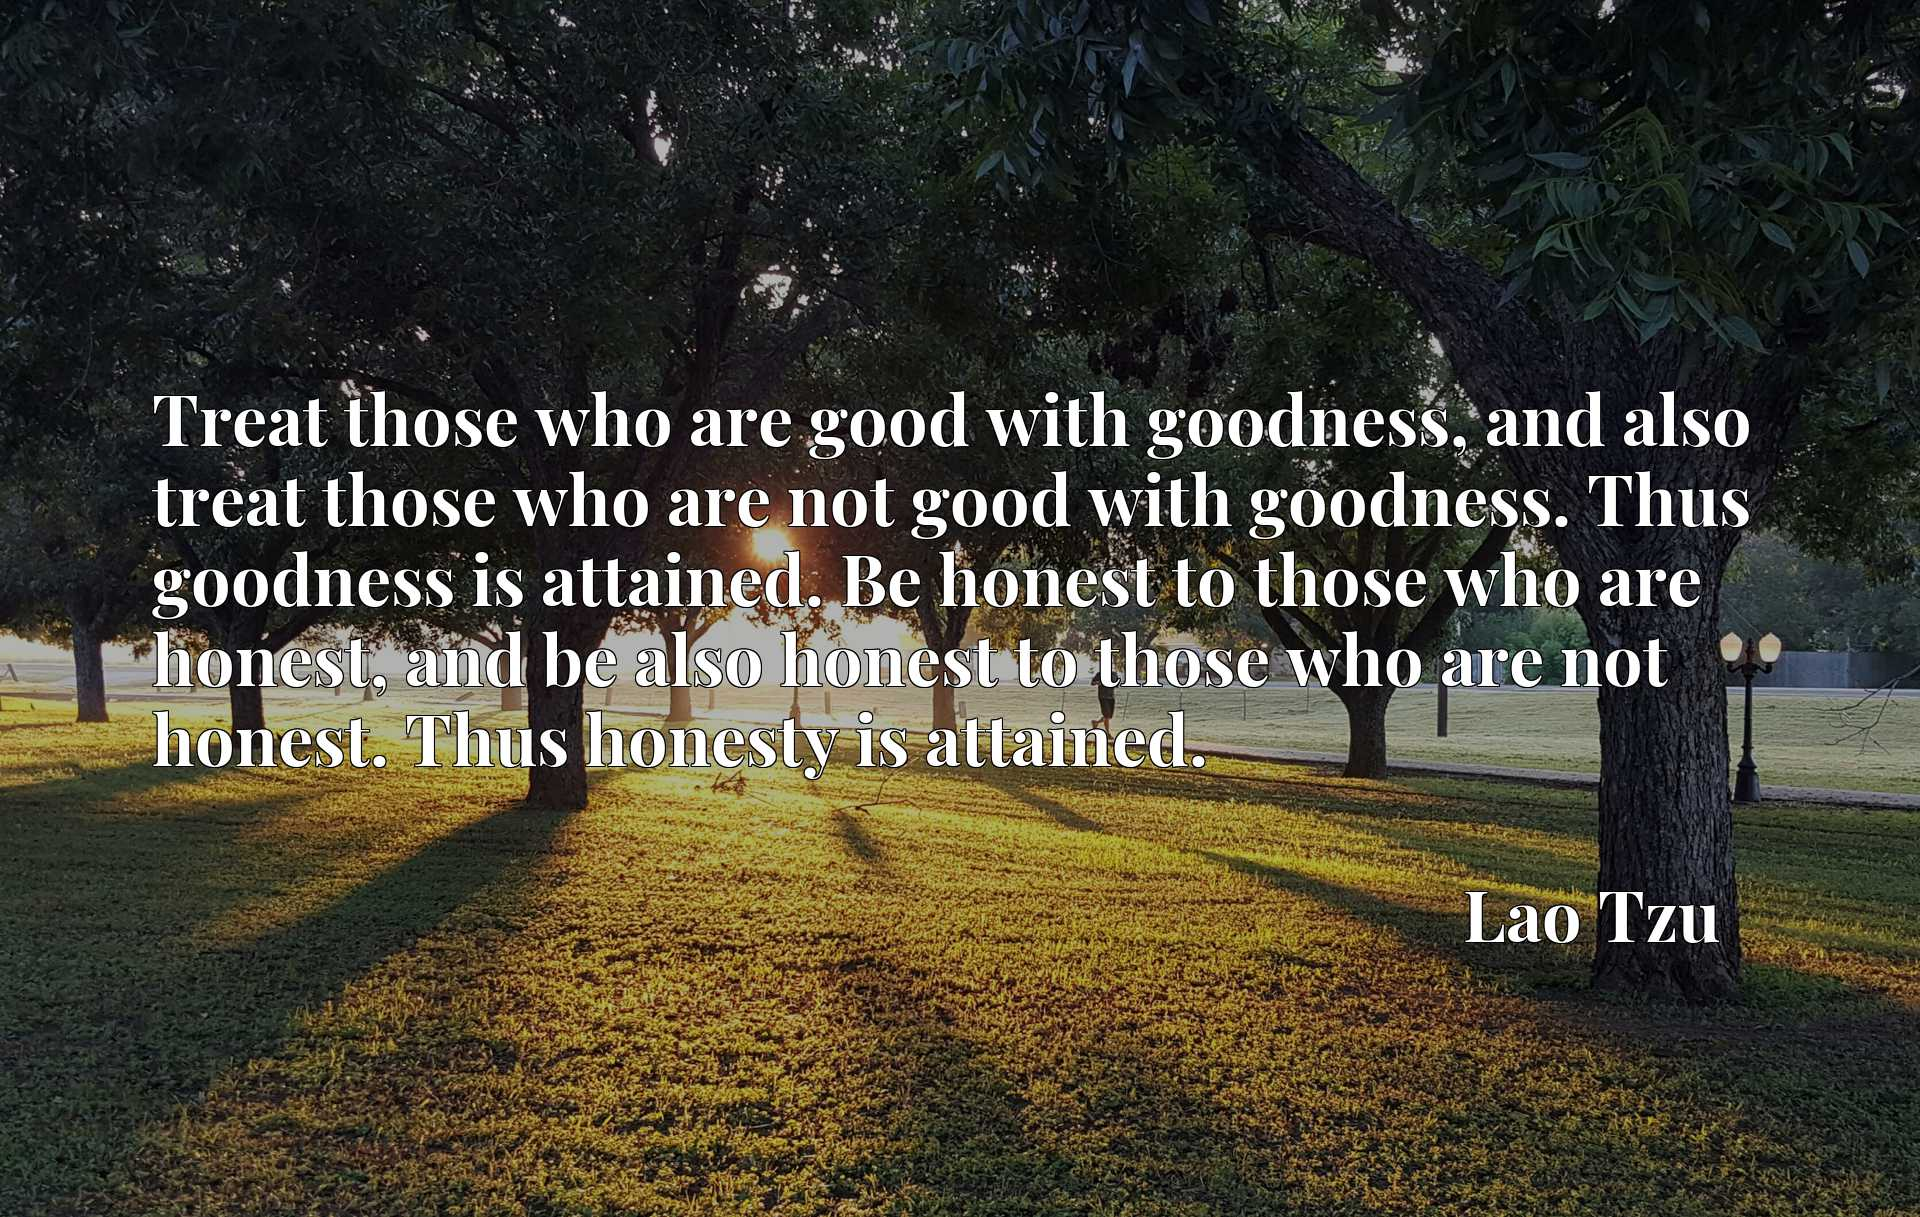 Treat those who are good with goodness, and also treat those who are not good with goodness. Thus goodness is attained. Be honest to those who are honest, and be also honest to those who are not honest. Thus honesty is attained.